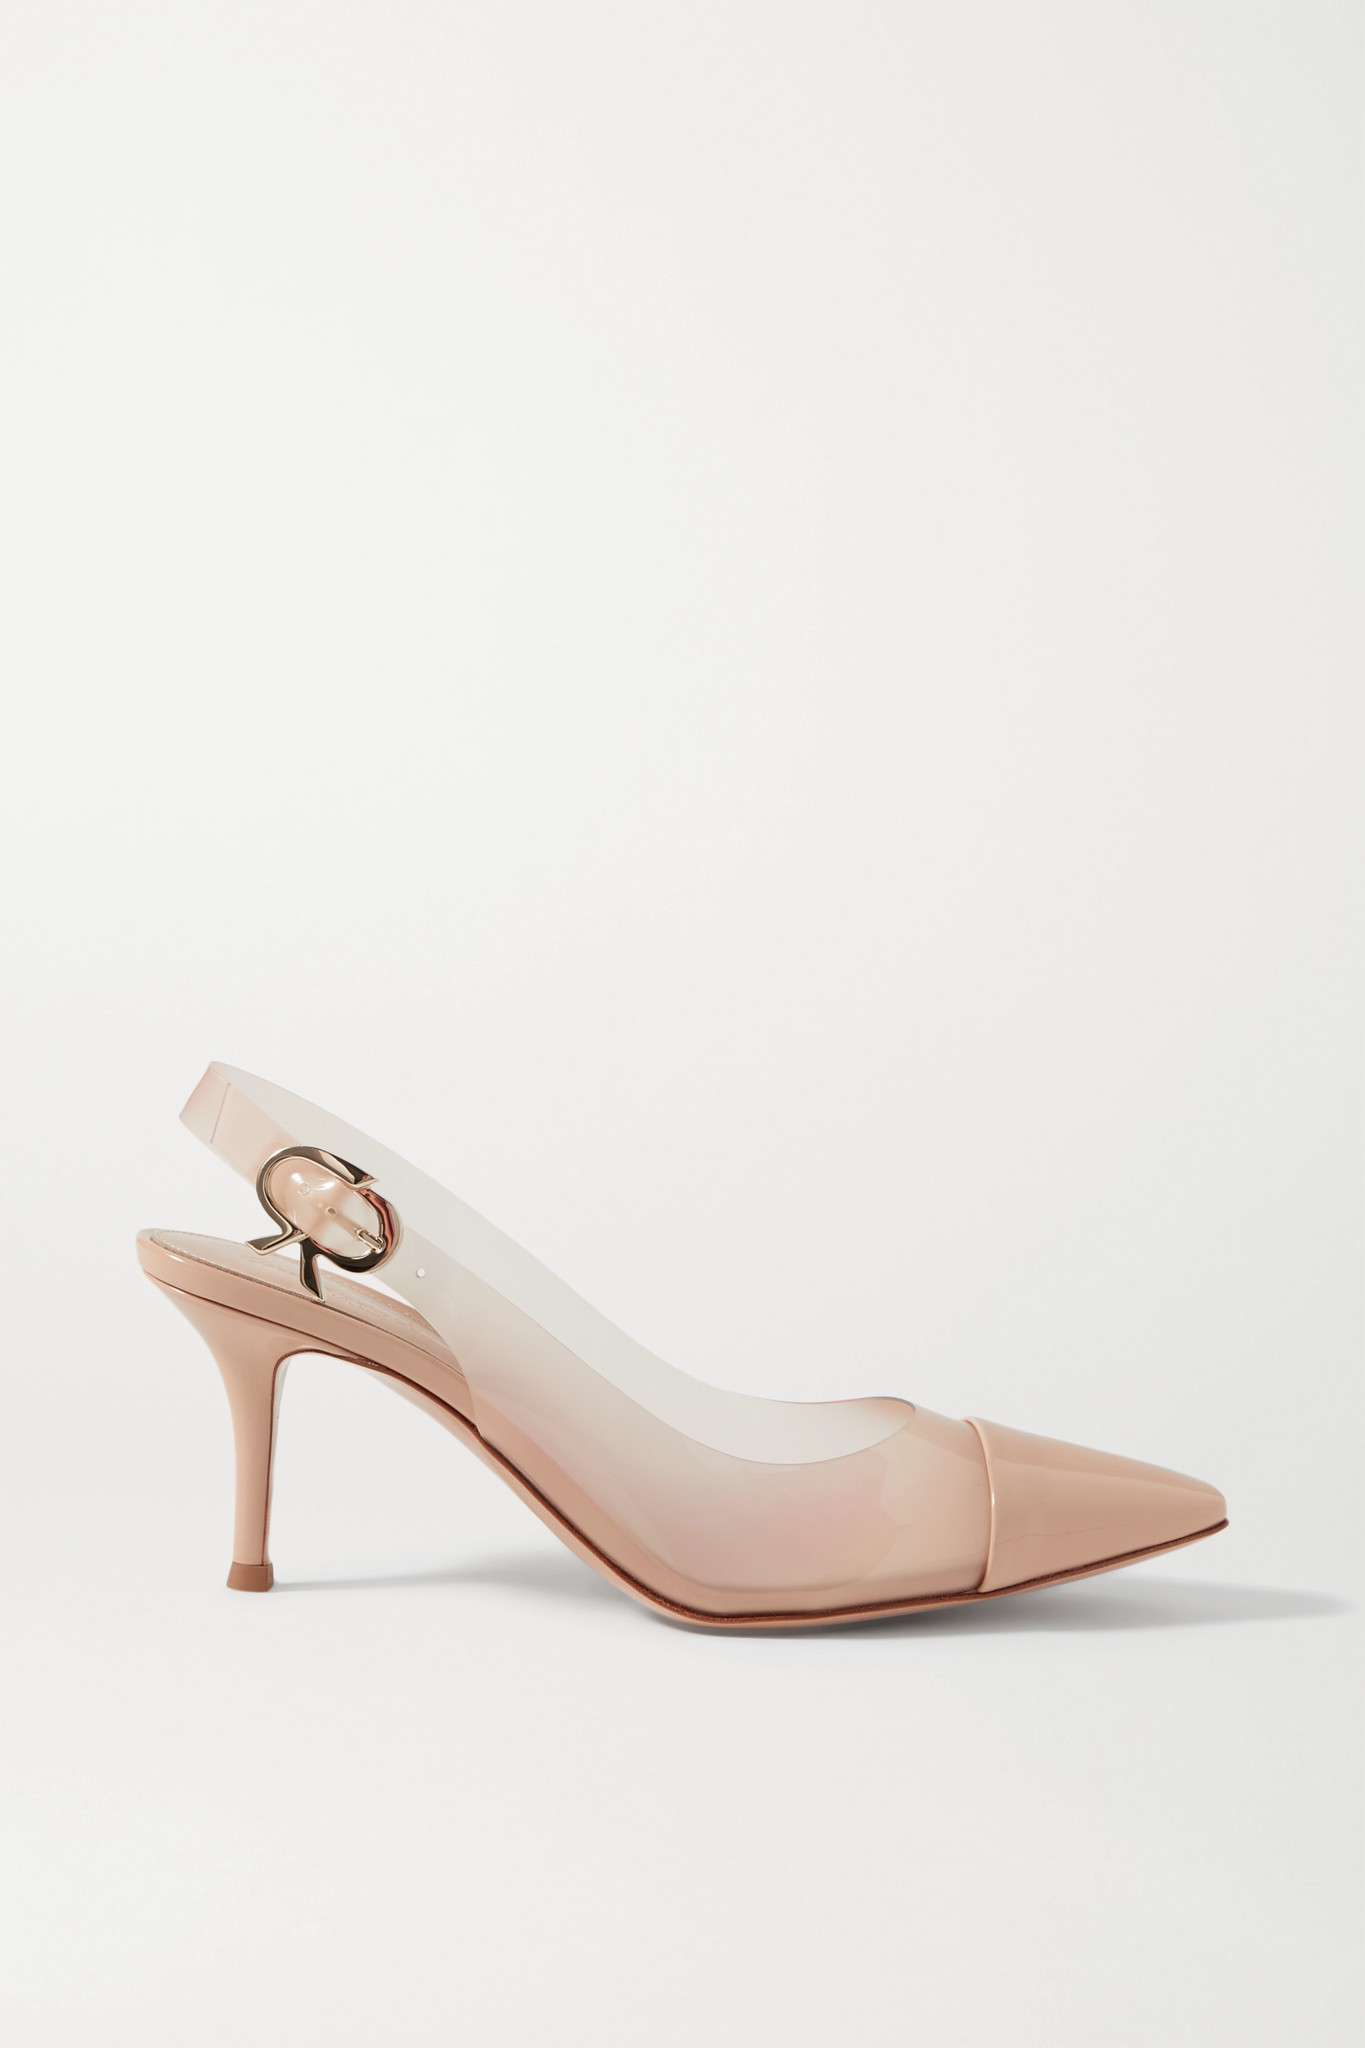 GIANVITO ROSSI - 70 Patent-leather And Pvc Slingback Pumps - Neutrals - IT37.5